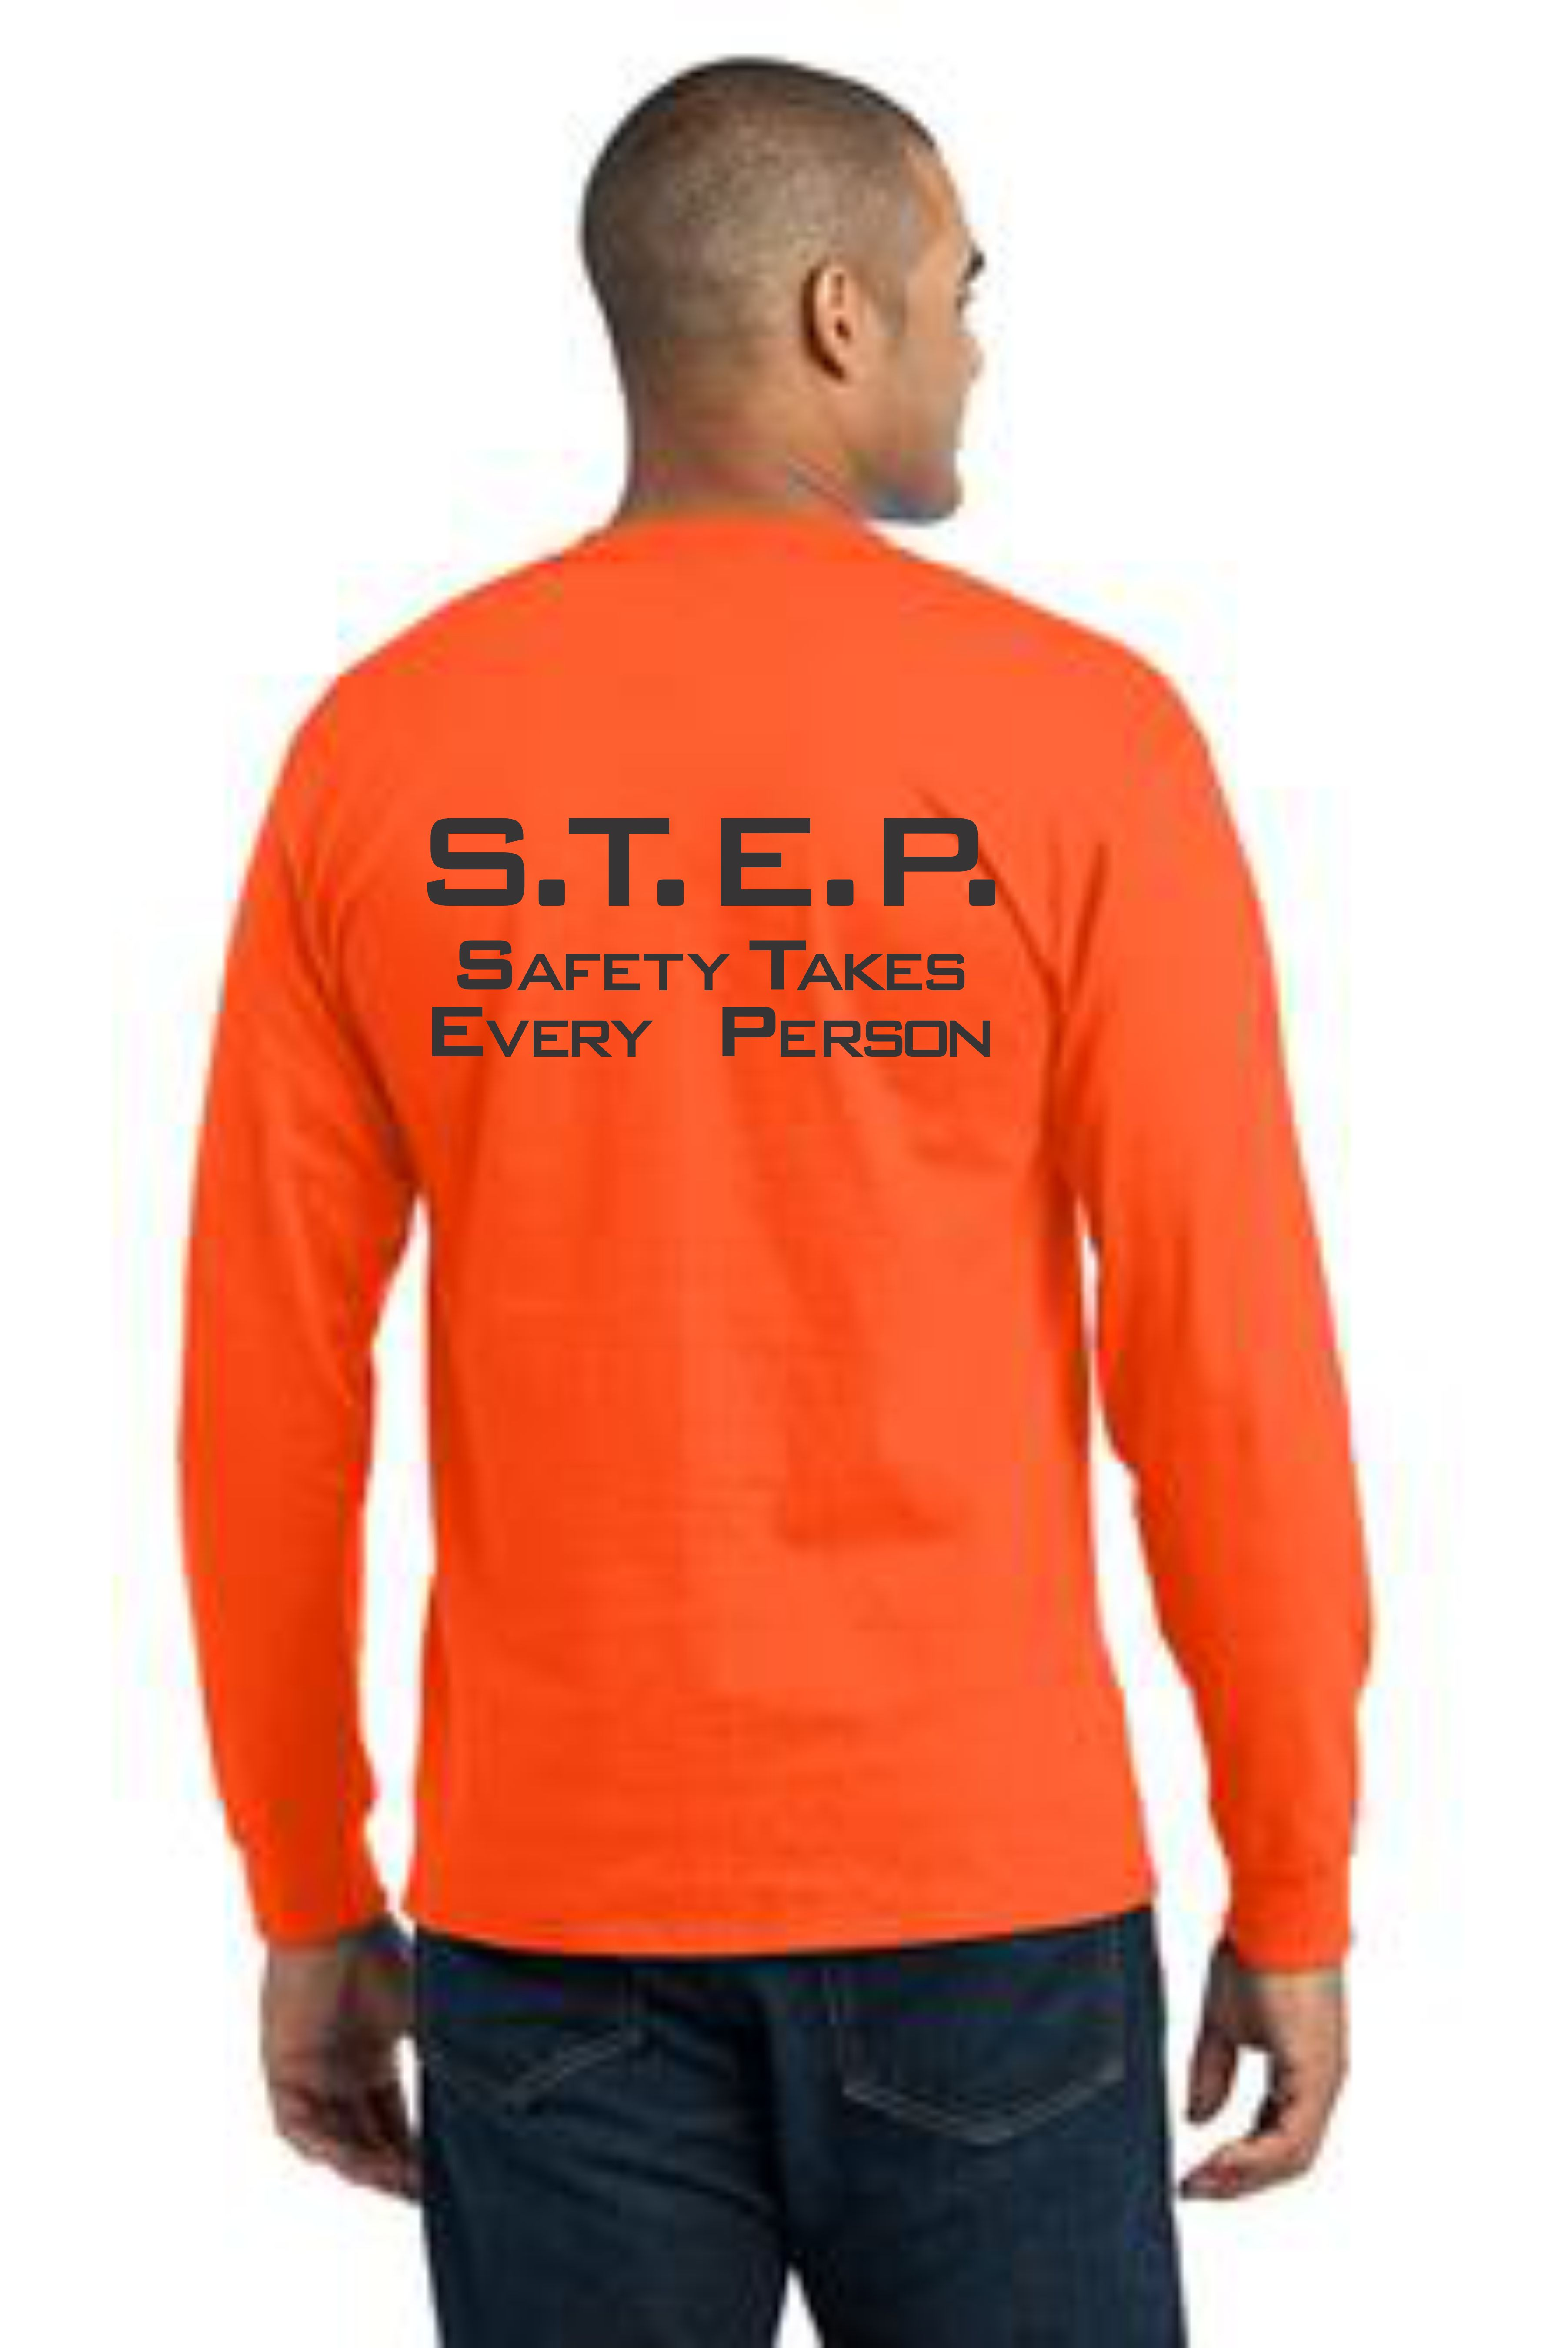 LONG SLEEVE SAFETY T-SHIRT -- S.T.E.P.